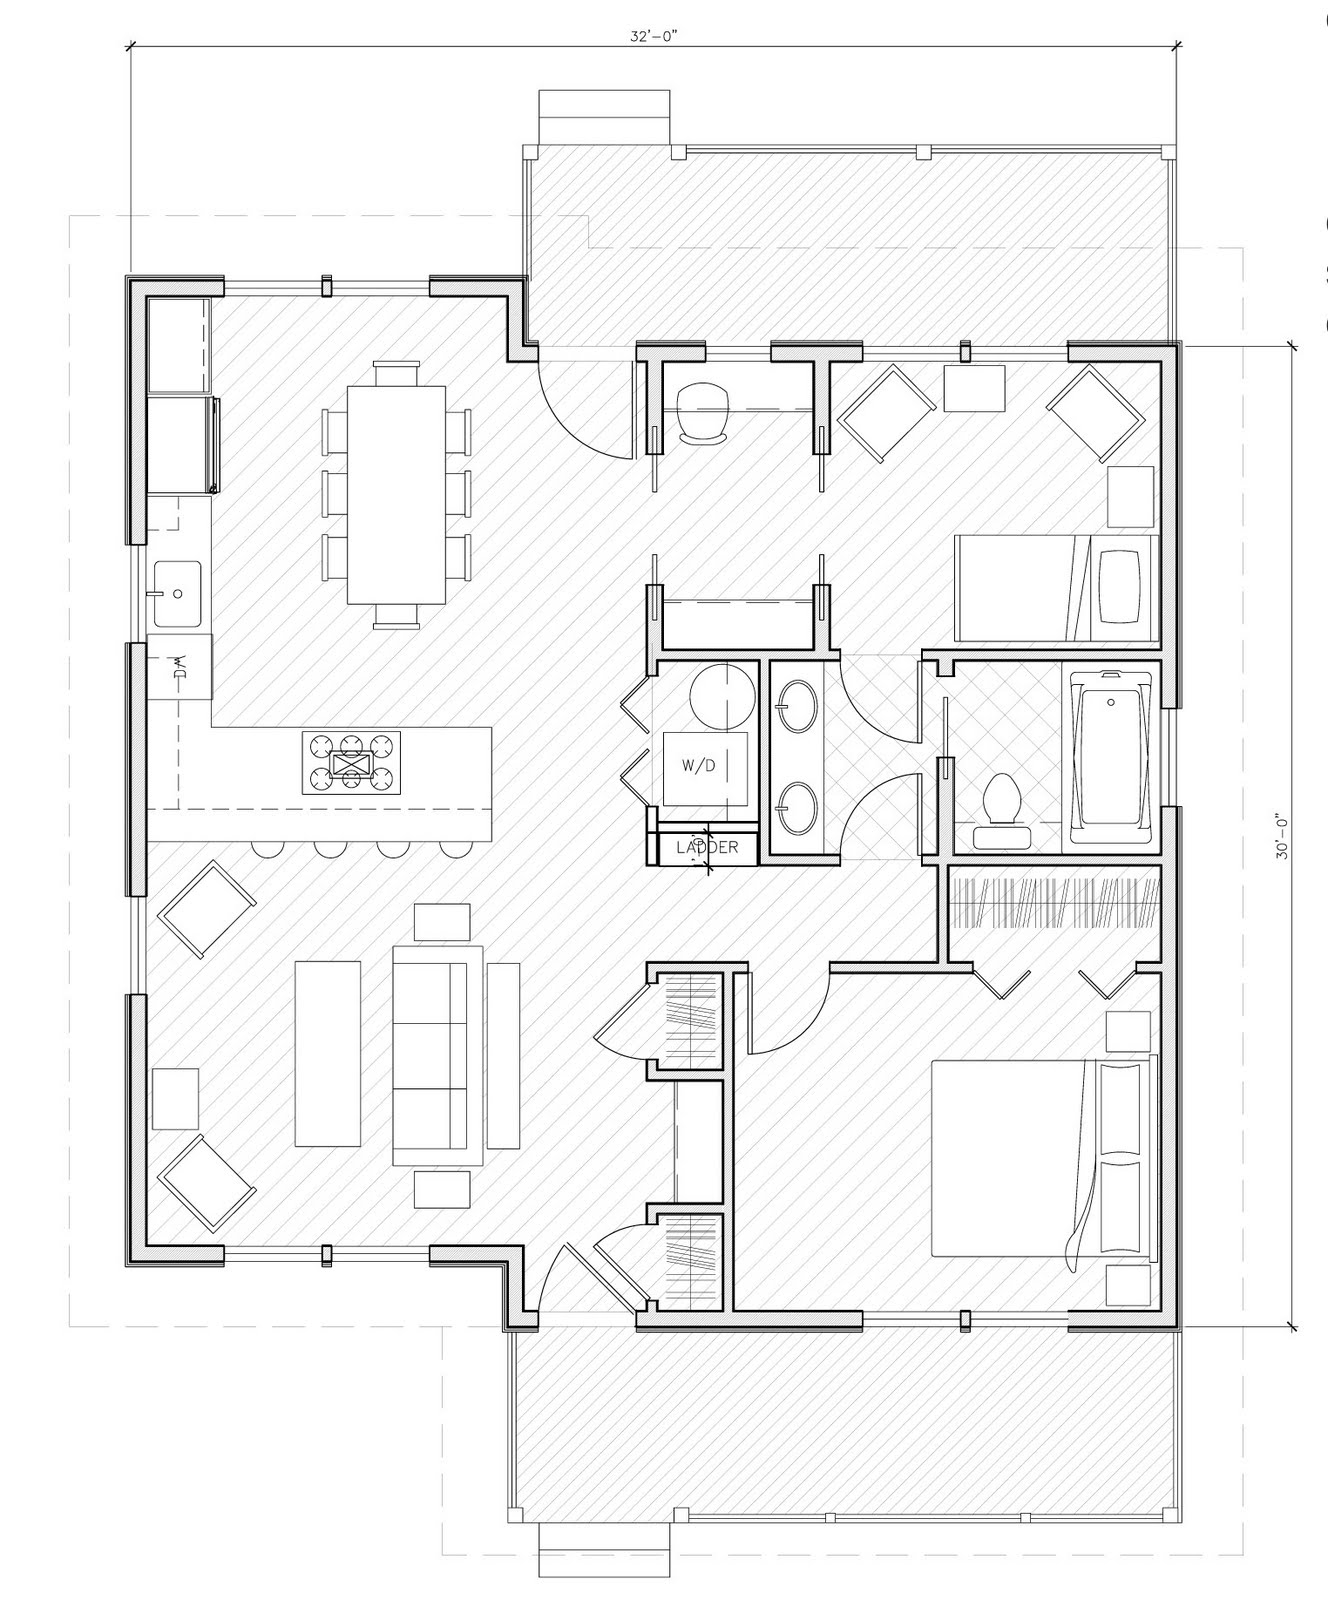 Design Banter D A Home Plans 3 Plans Under 1 000 Square Feet